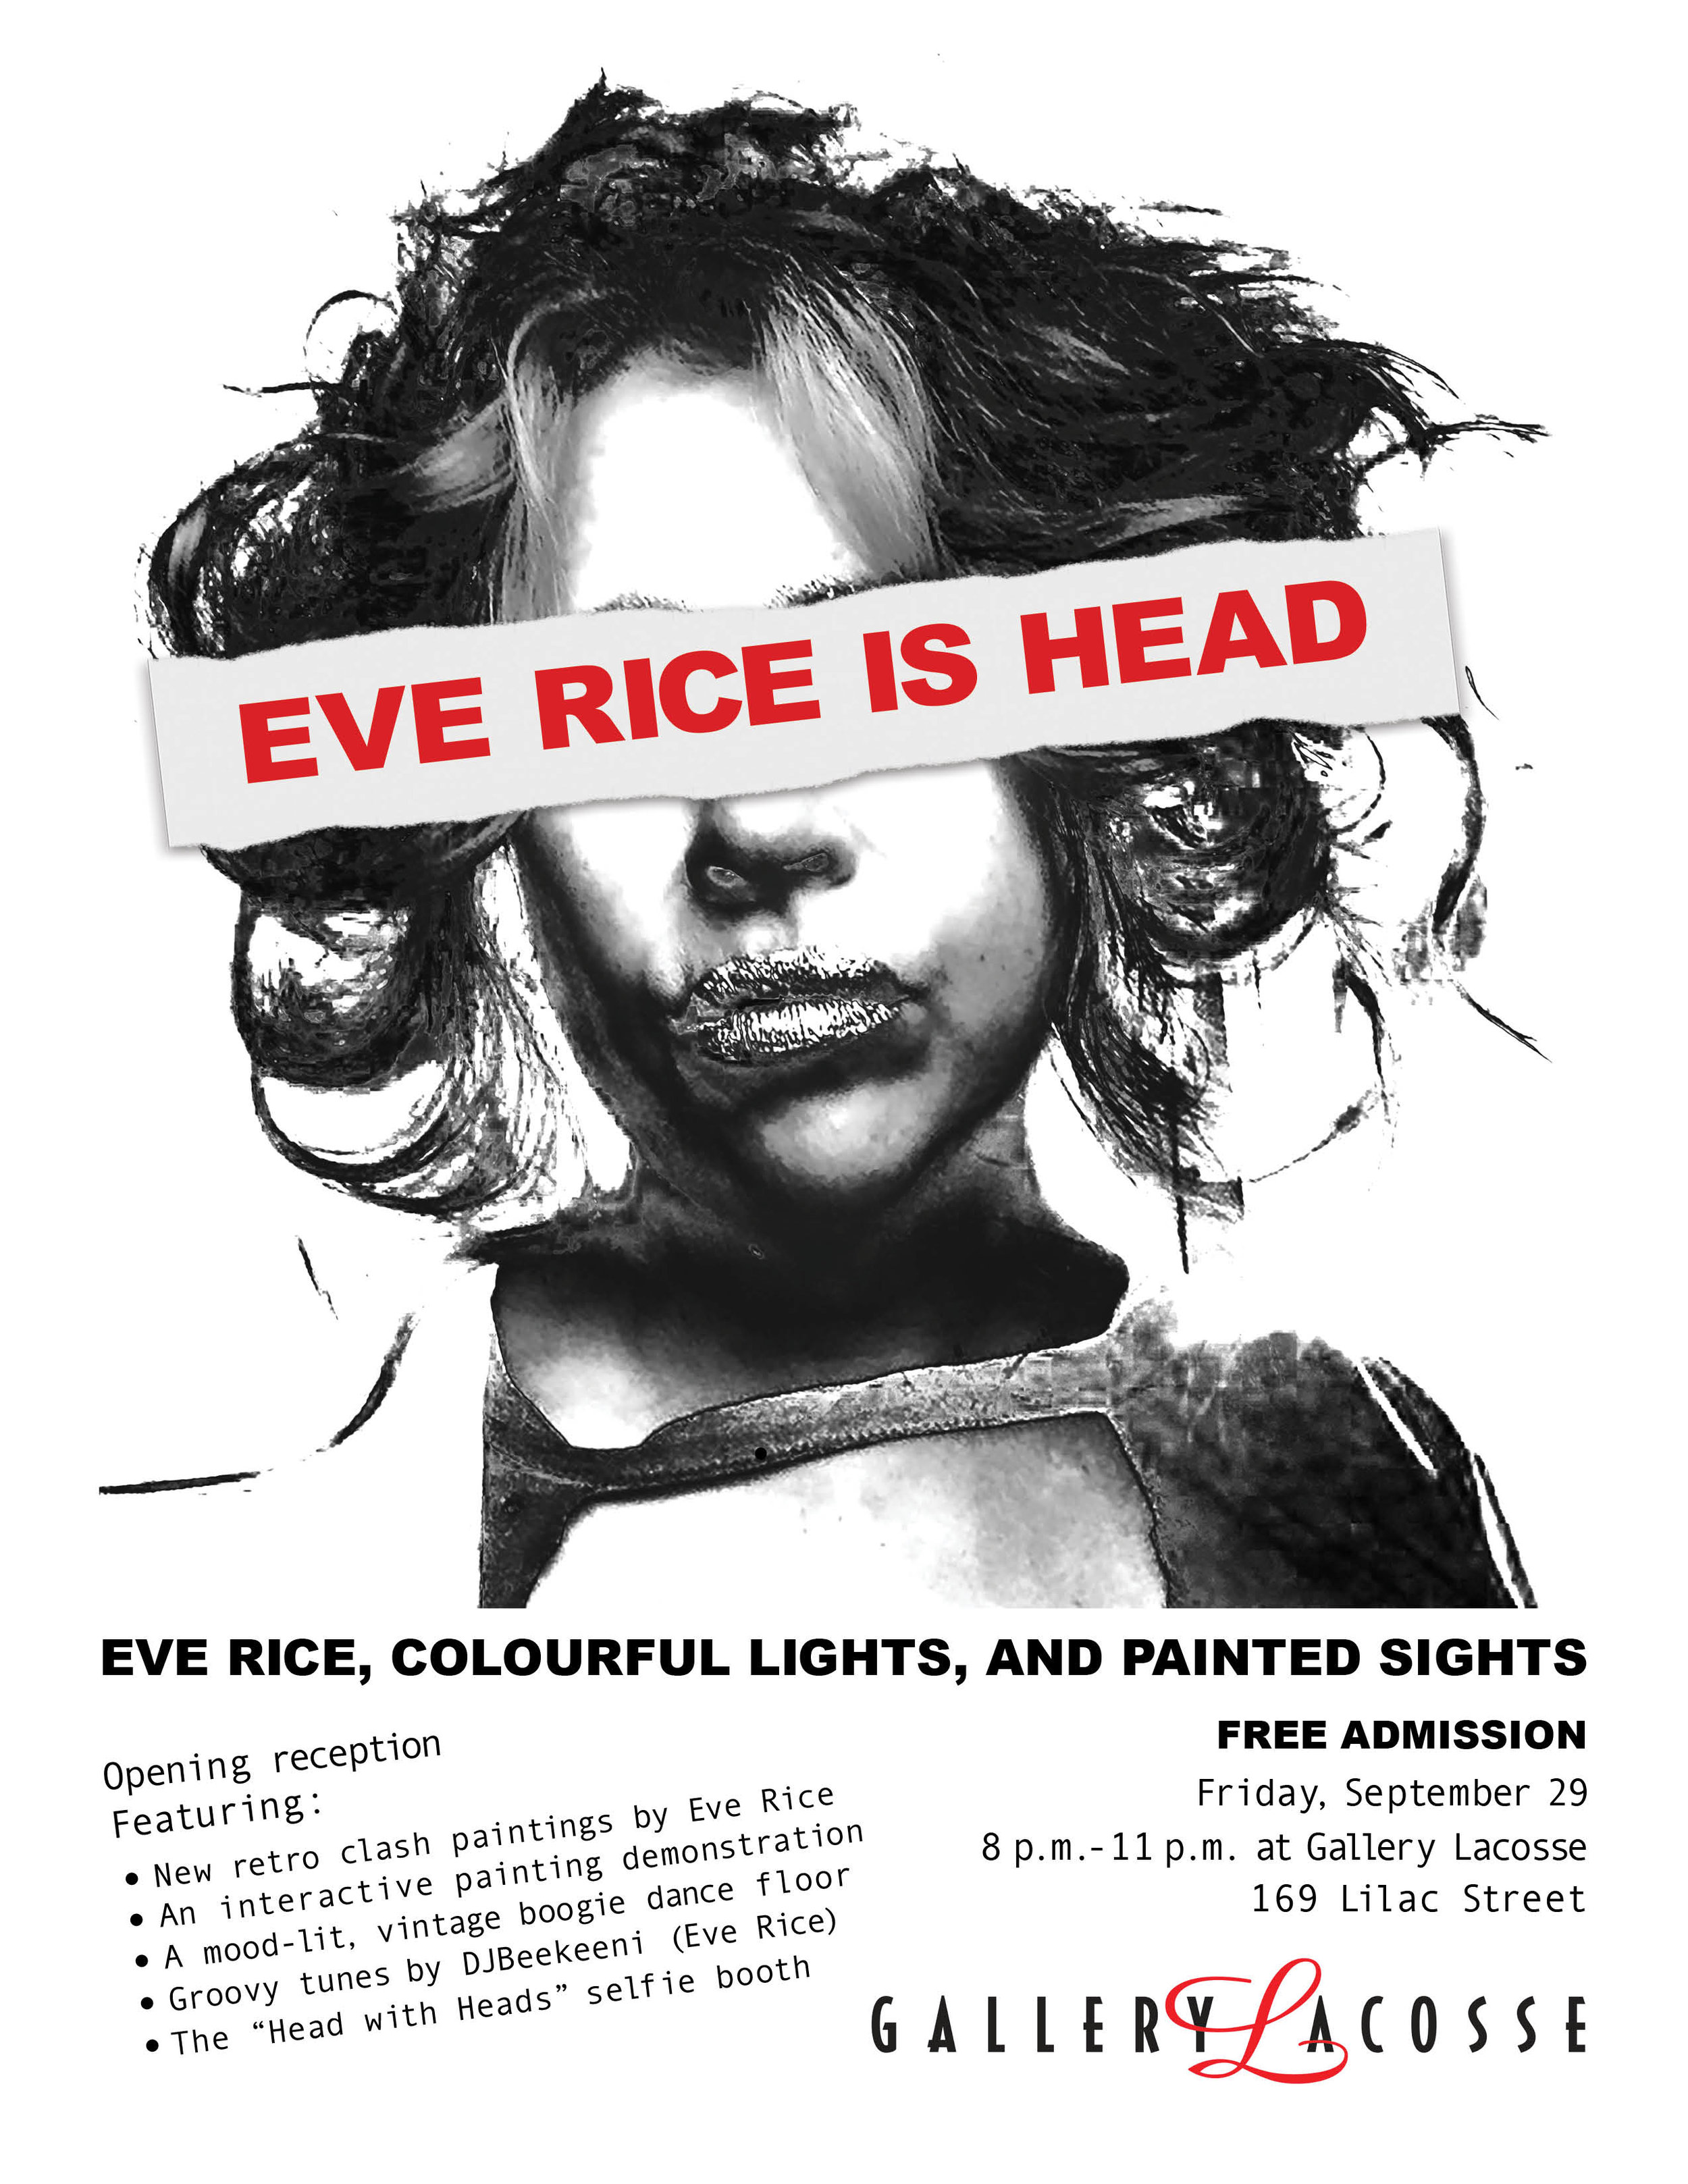 Eve Rice Is Head Letter.jpg